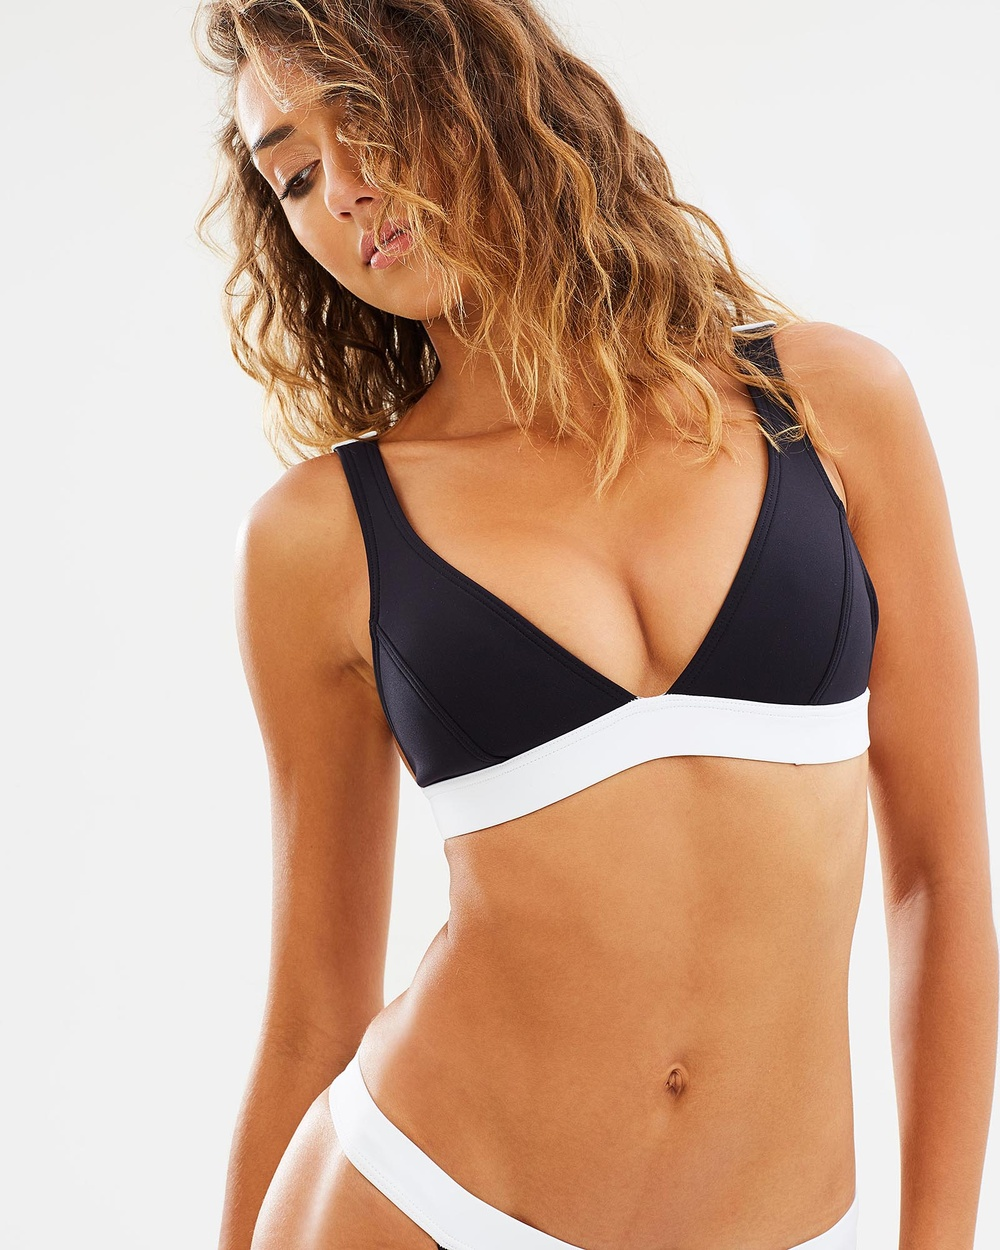 Bondi Born Moonbeam Coast Walk Bra Bikini Tops Black, White Moonbeam Coast Walk Bra